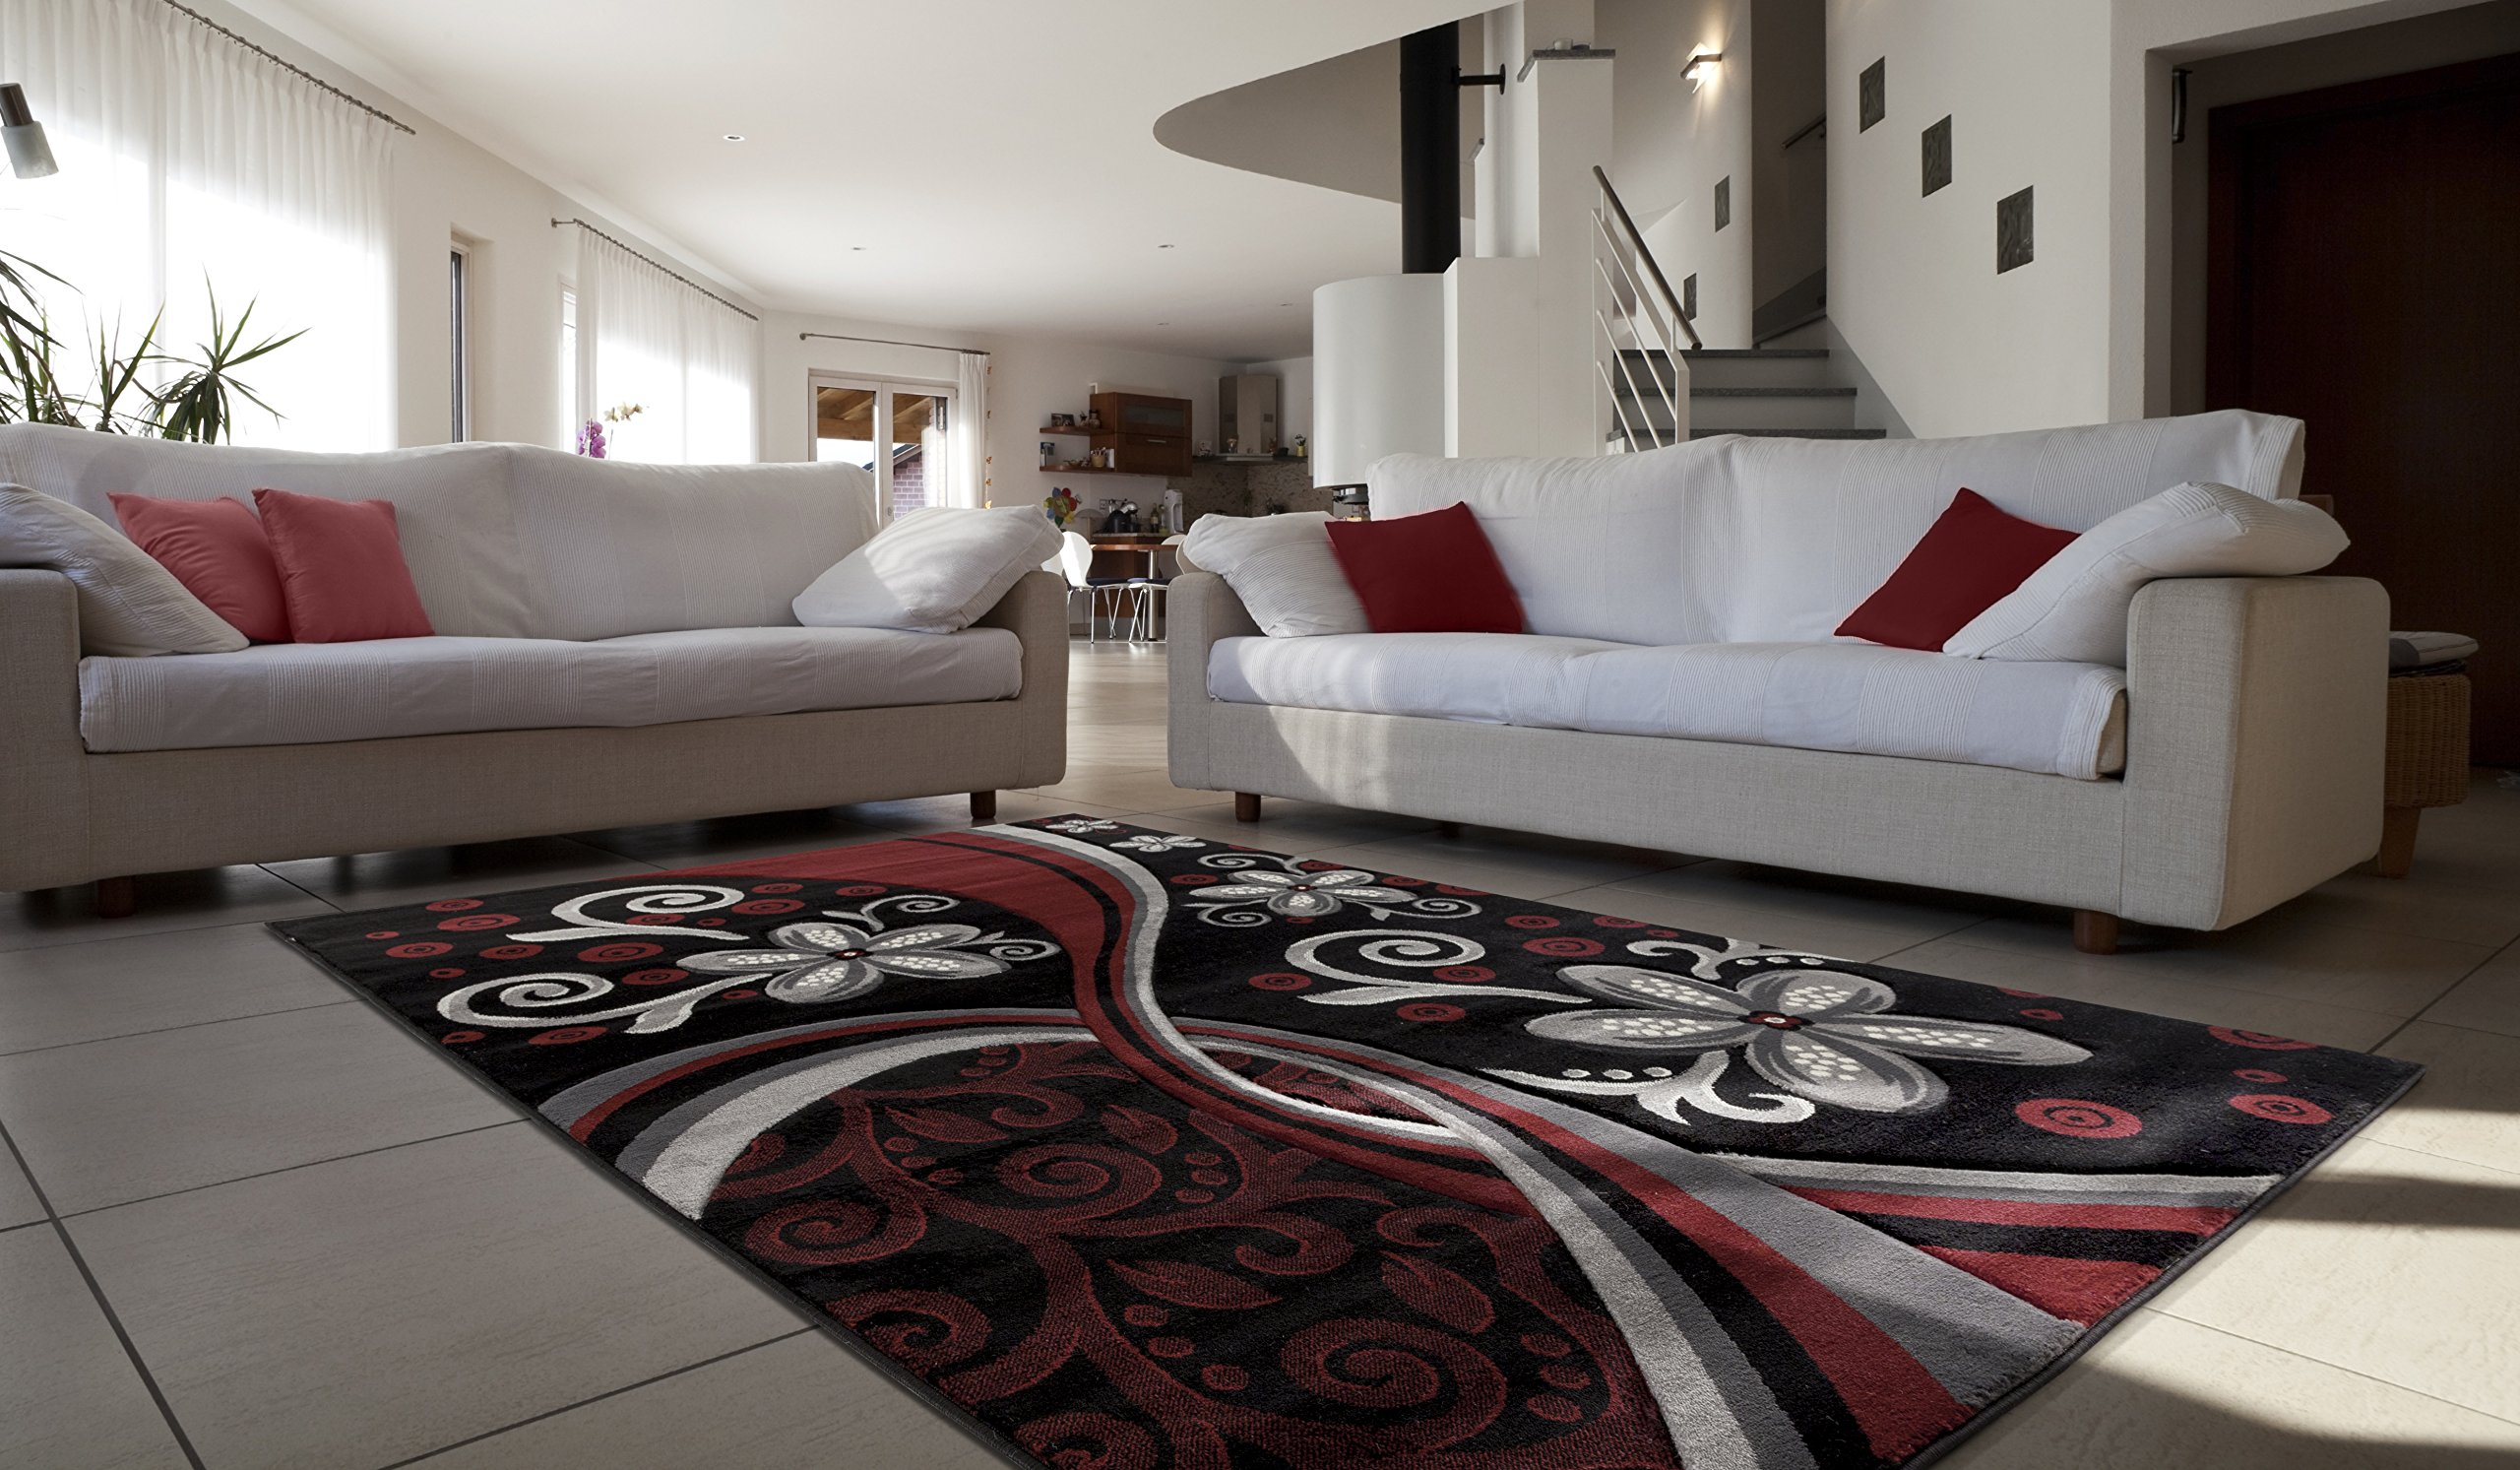 All New Contemporary Floral Design with Swirls Area Rug Legacy Collection by Rug Deal Plus (7'11'' x 10'7'', Burgundy/Black)